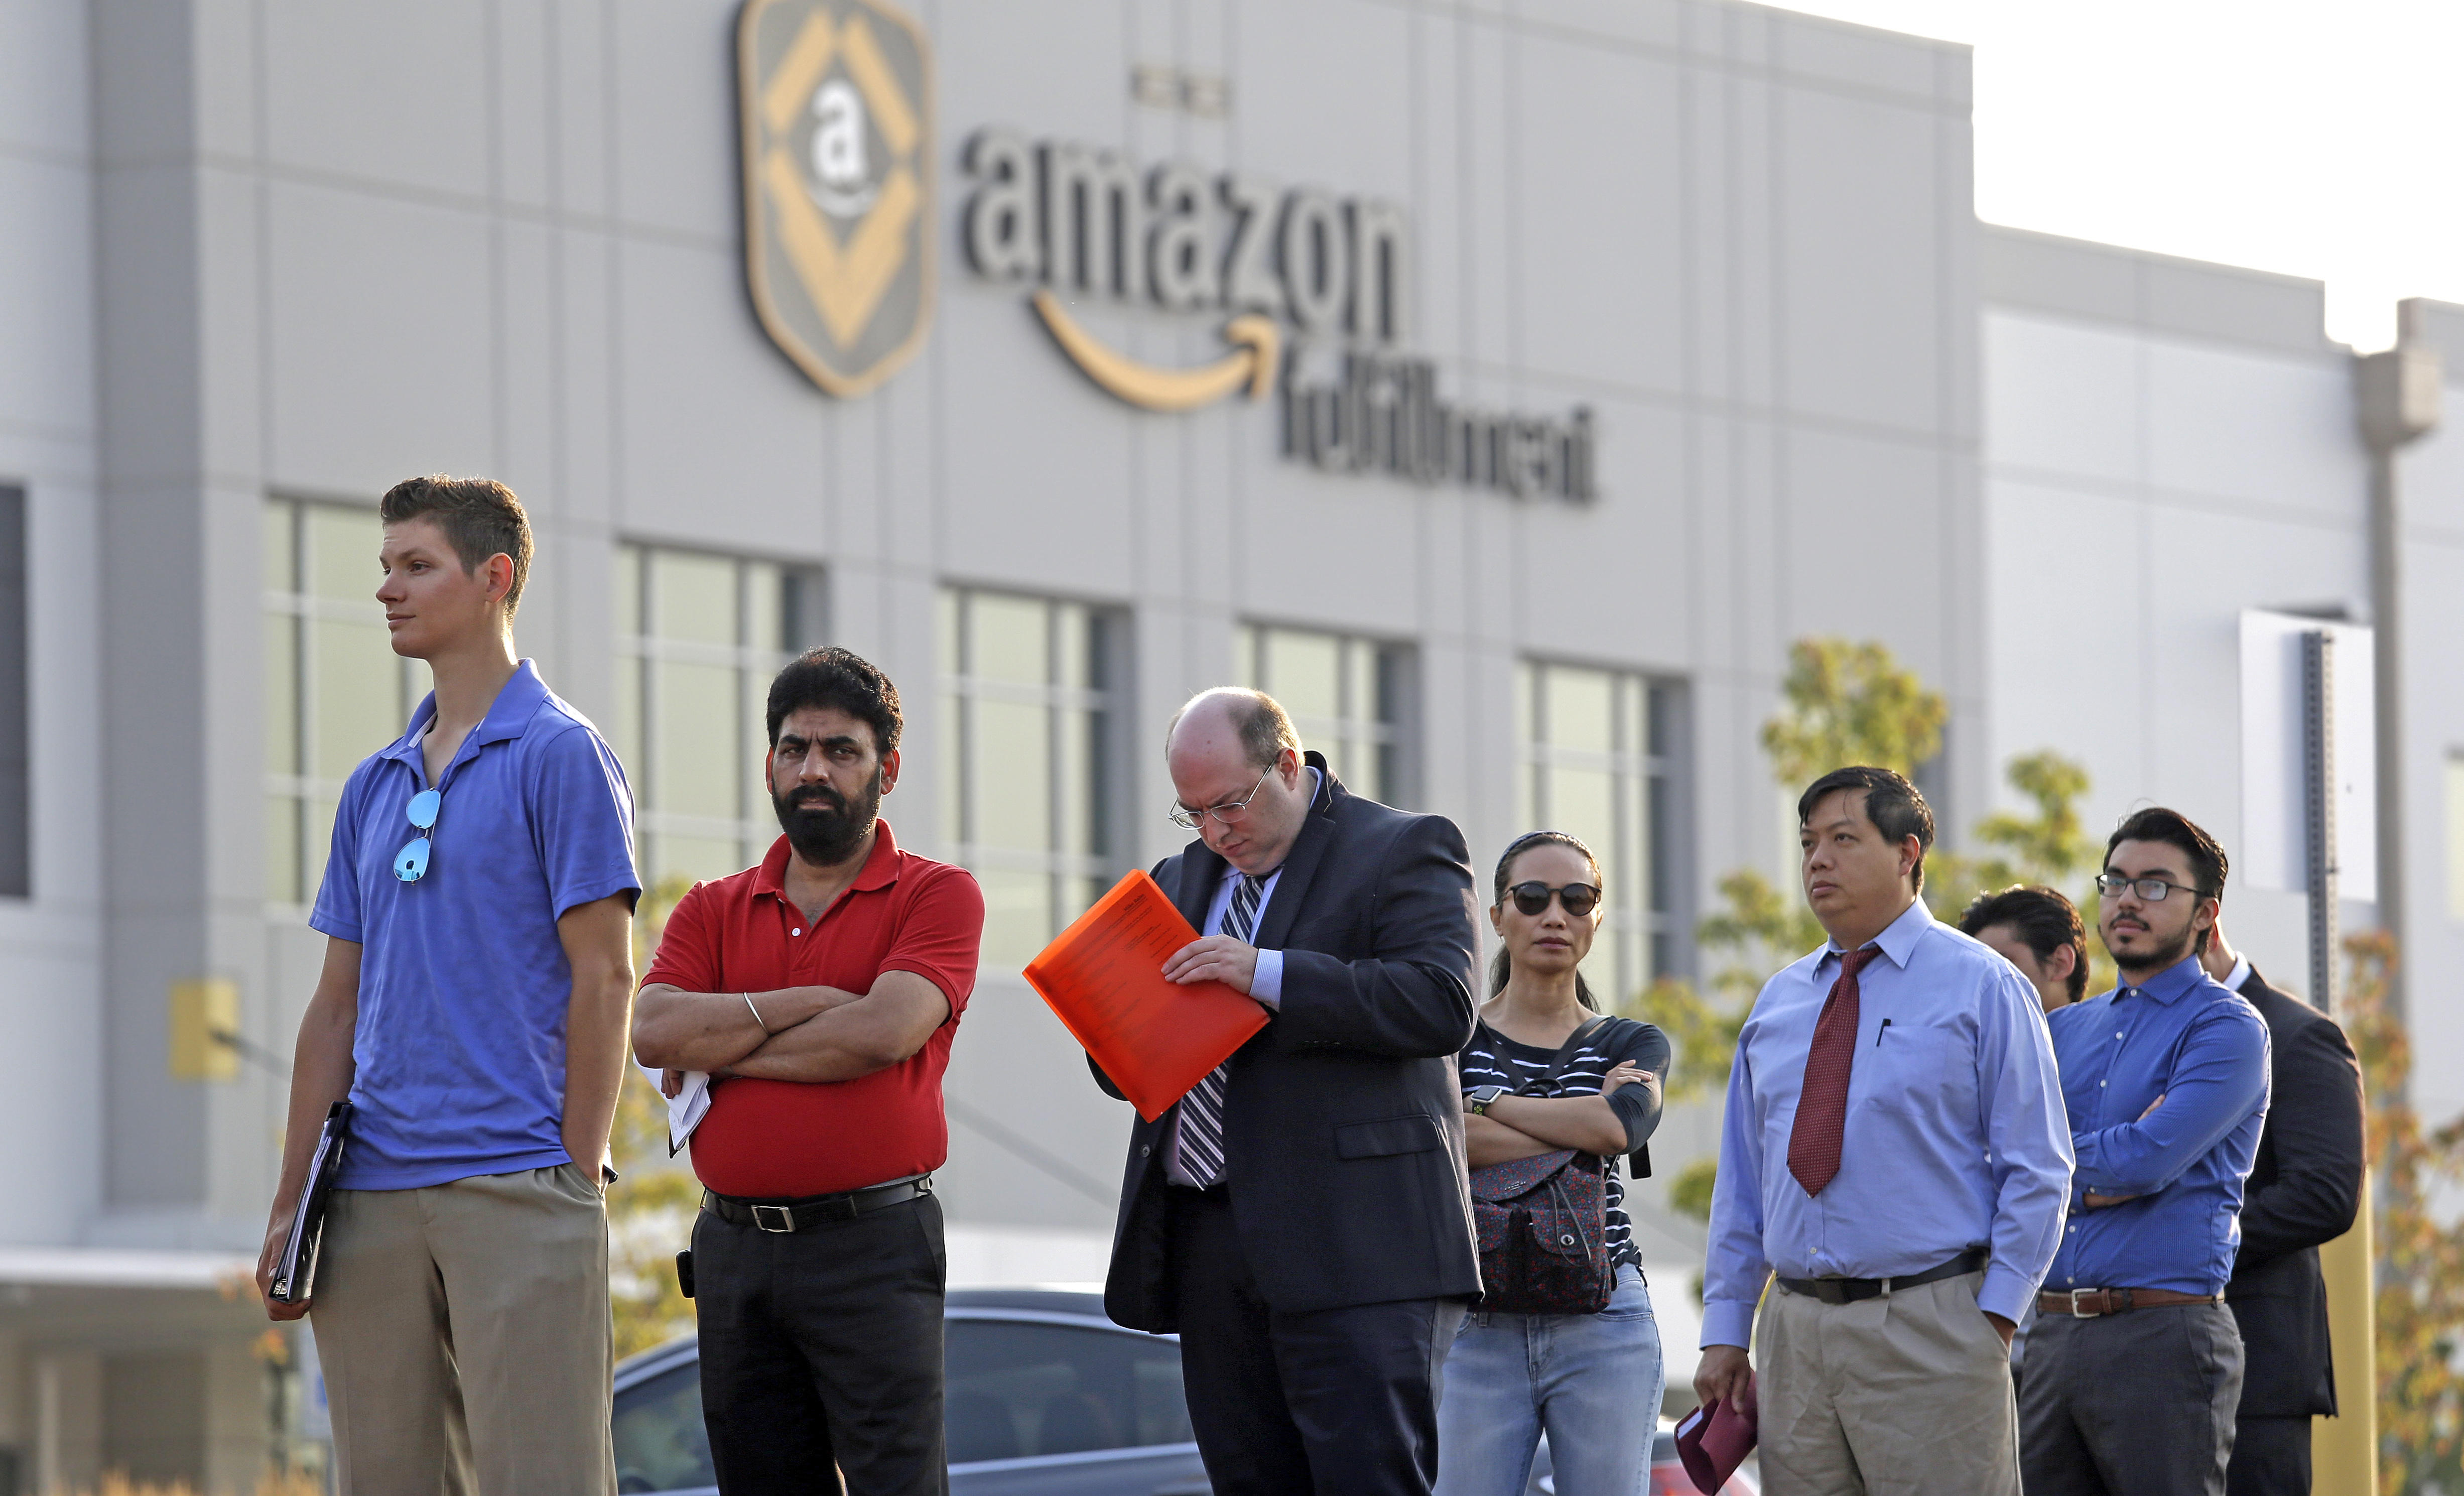 Want work this holiday season? Here's where Amazon is hiring